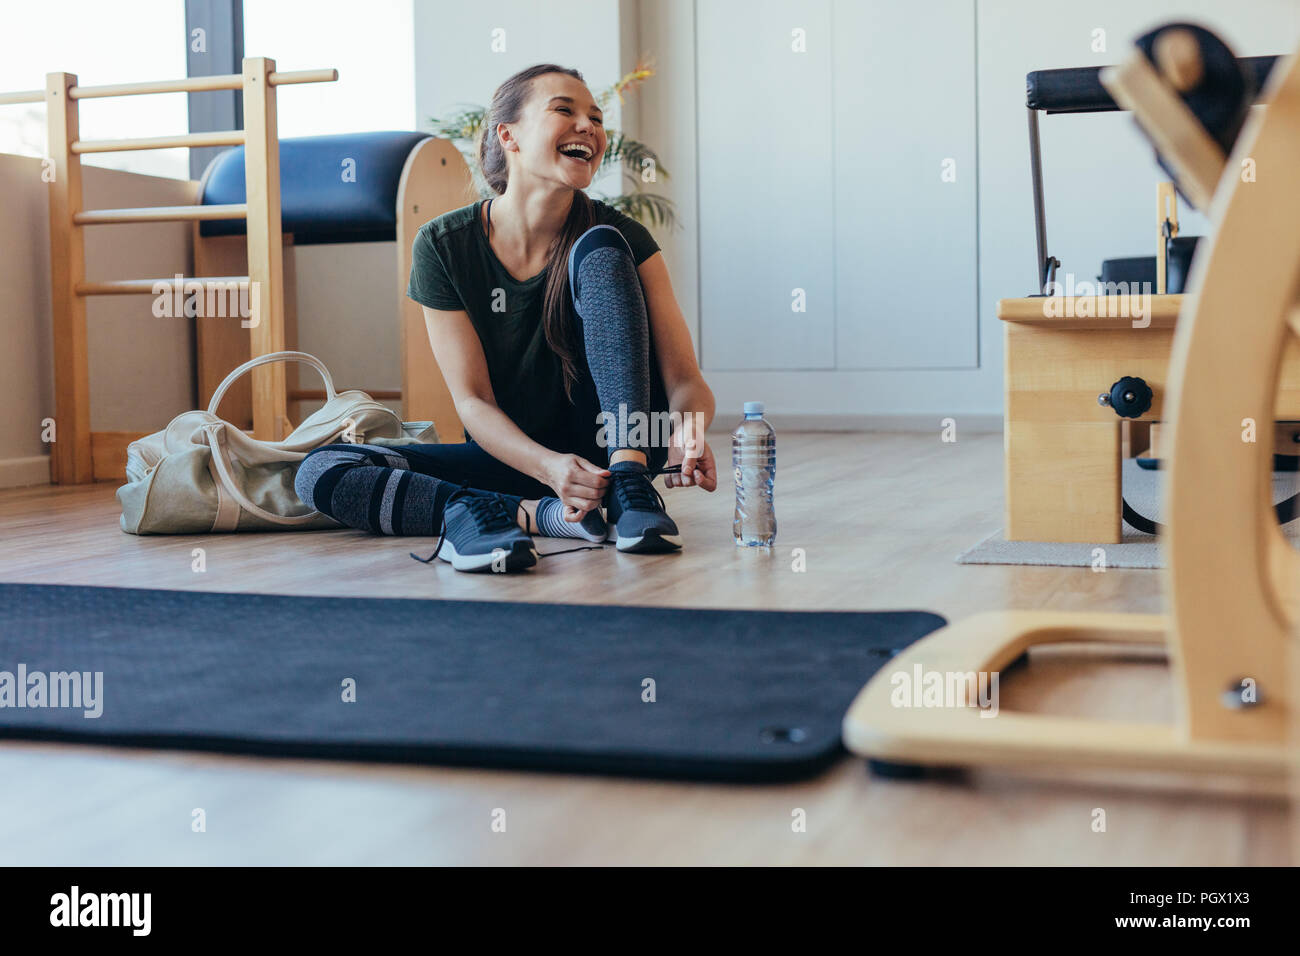 Smiling woman wearing her shoes after workout sitting at the gym. Woman sitting on floor at a pilates gym with her gym bag tying her shoelaces. - Stock Image